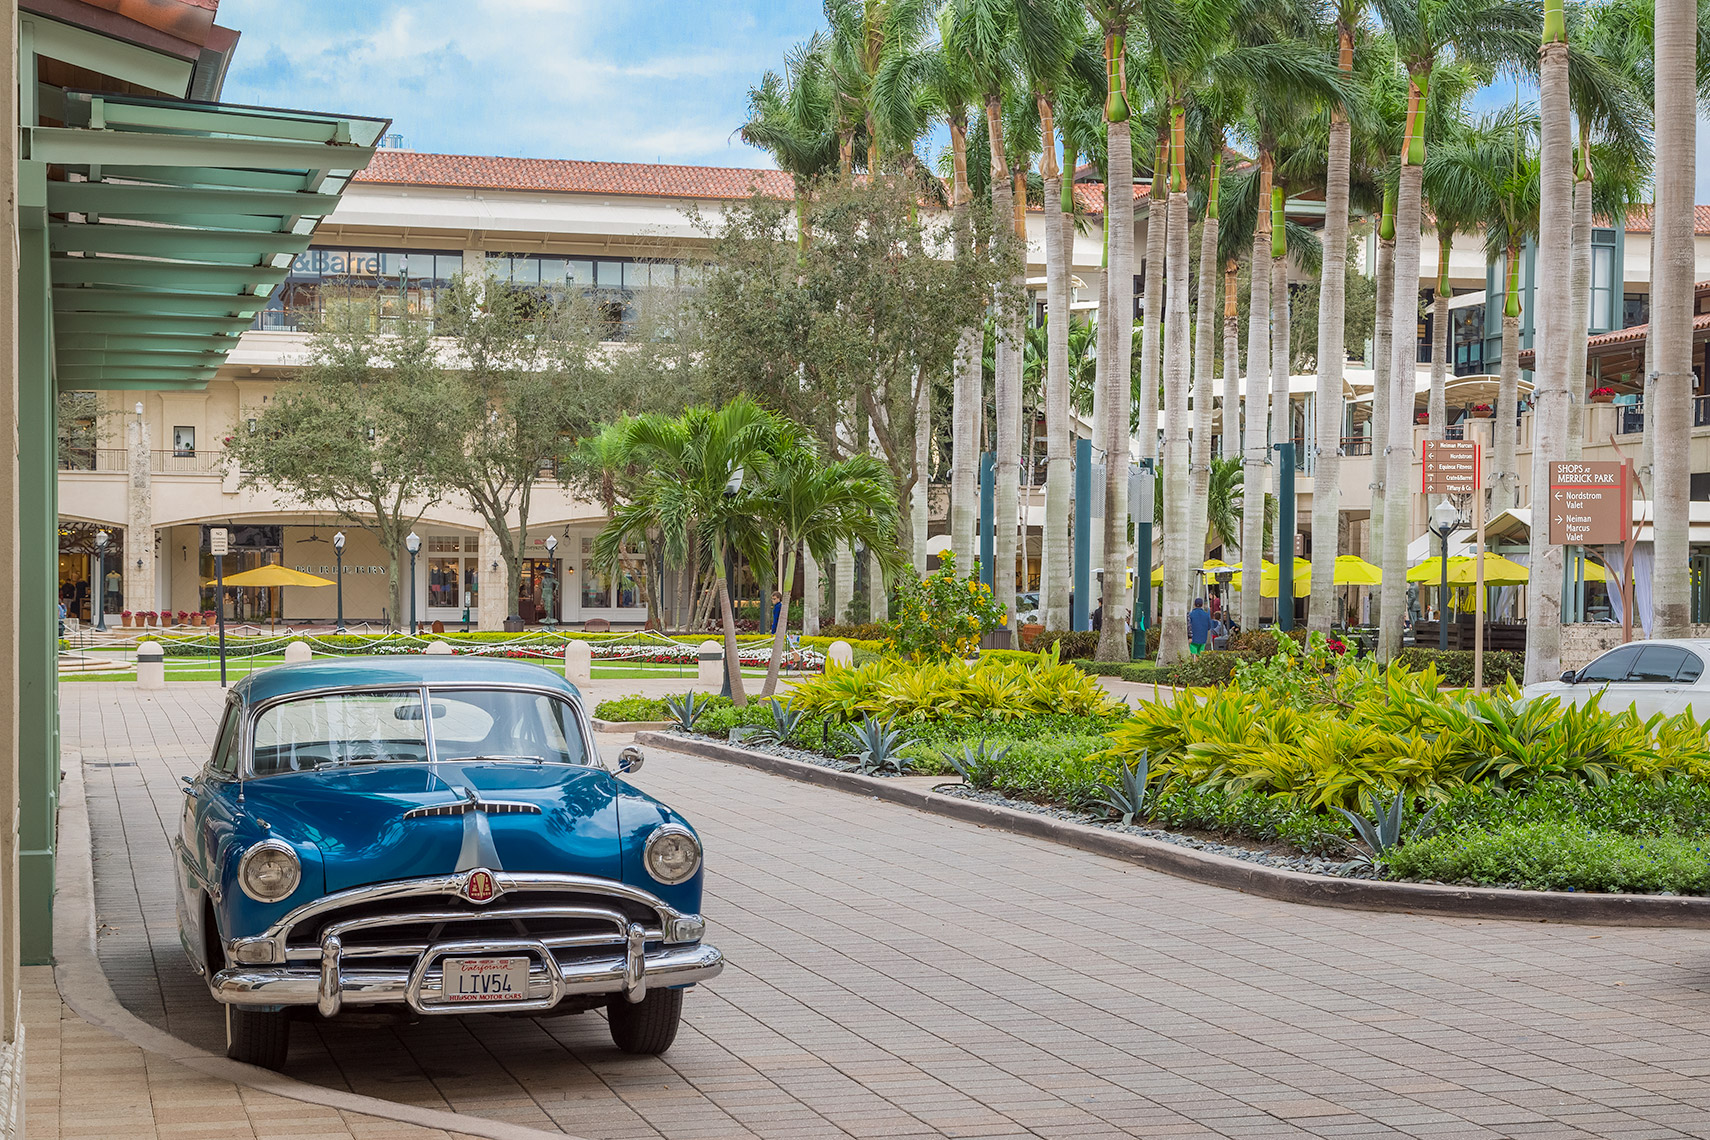 Vintage blue car at Shops at Merrick Park